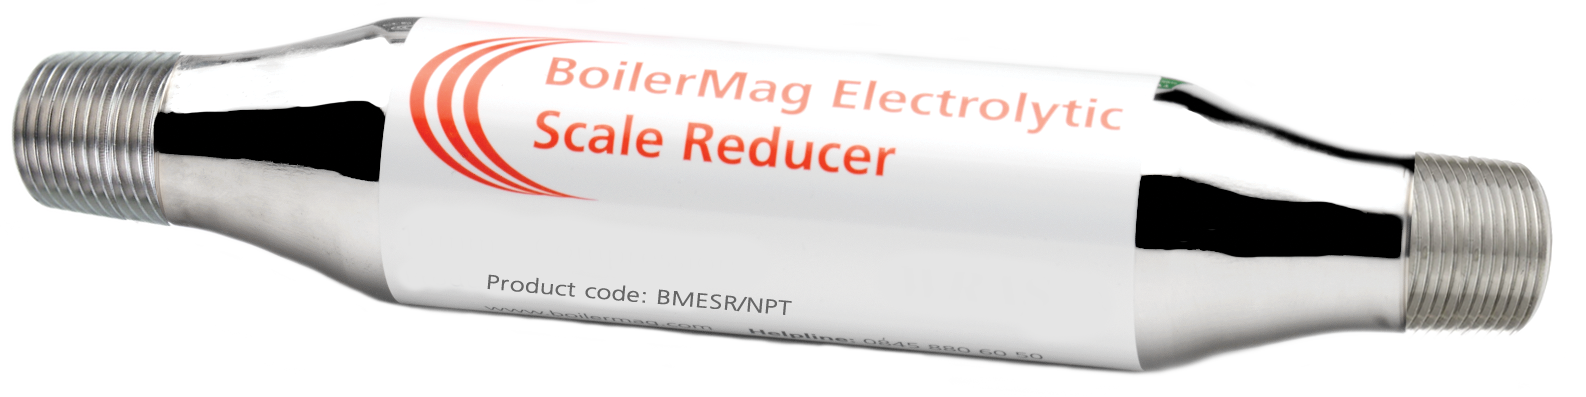 BoilerMag Domestic - Electrolytic Scale Reducer